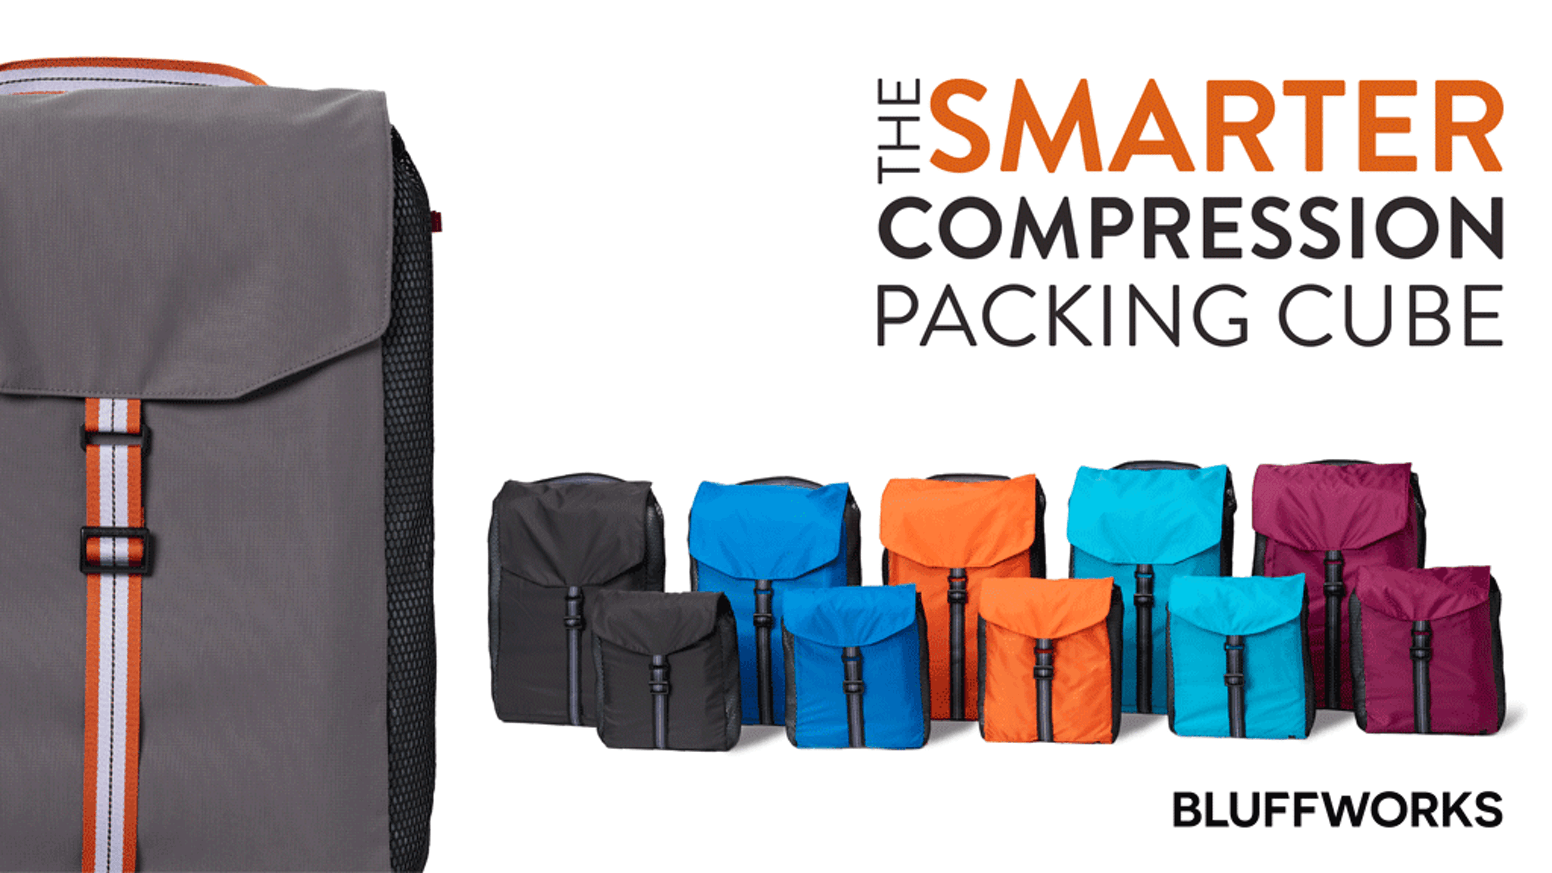 Pack smarter, organize better, save space. Versatile, lightweight packing cubes designed to compact as tightly as you want, every time.